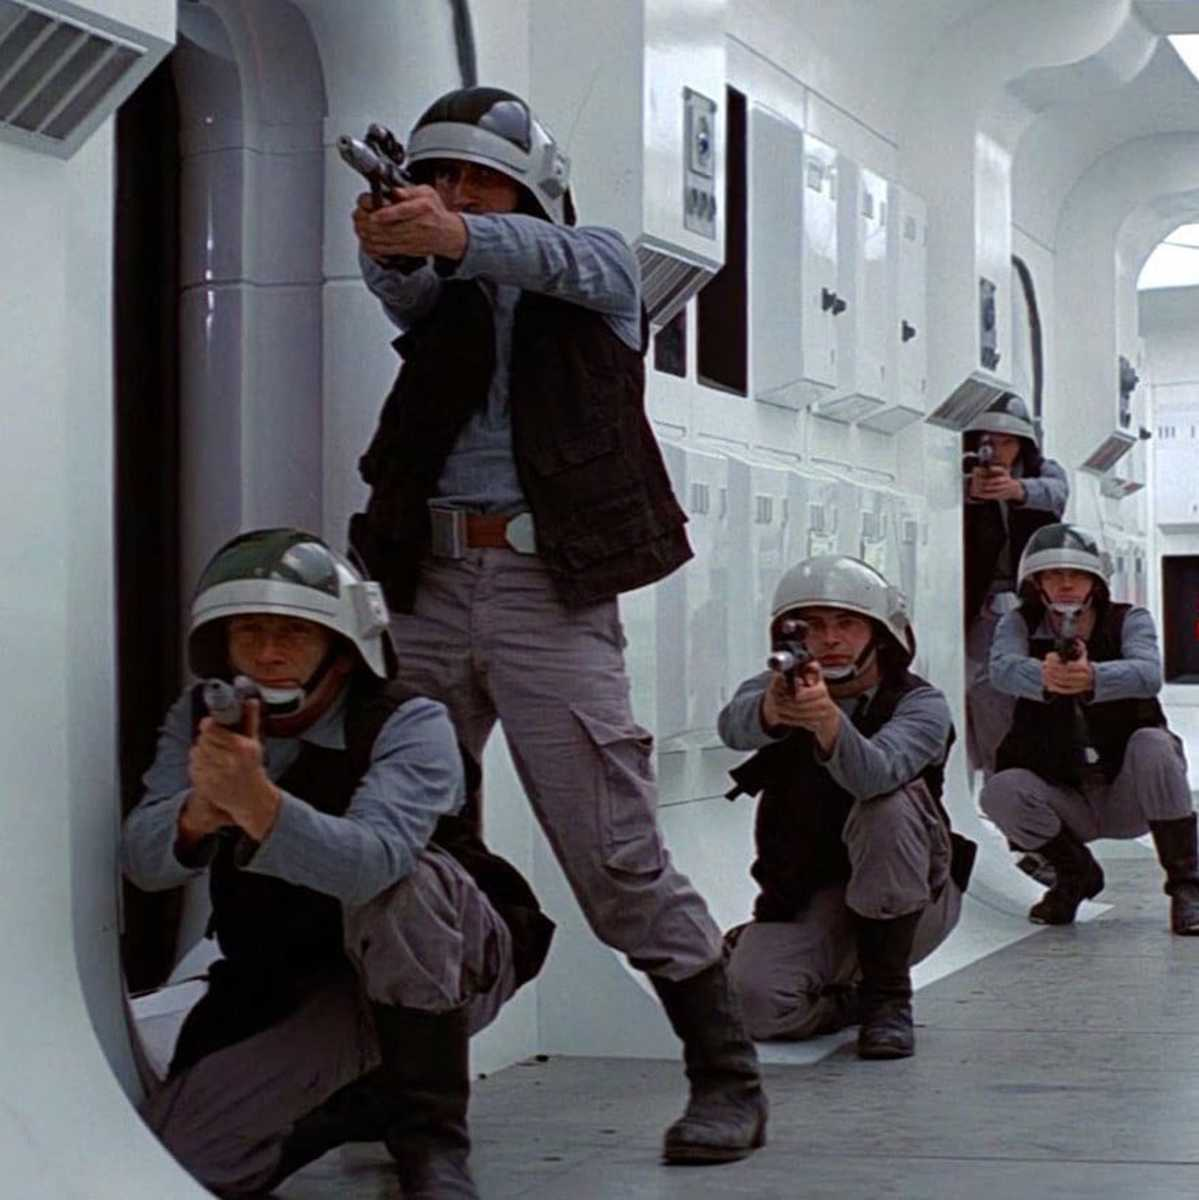 Look at these losers. (Photo via starwars.com)